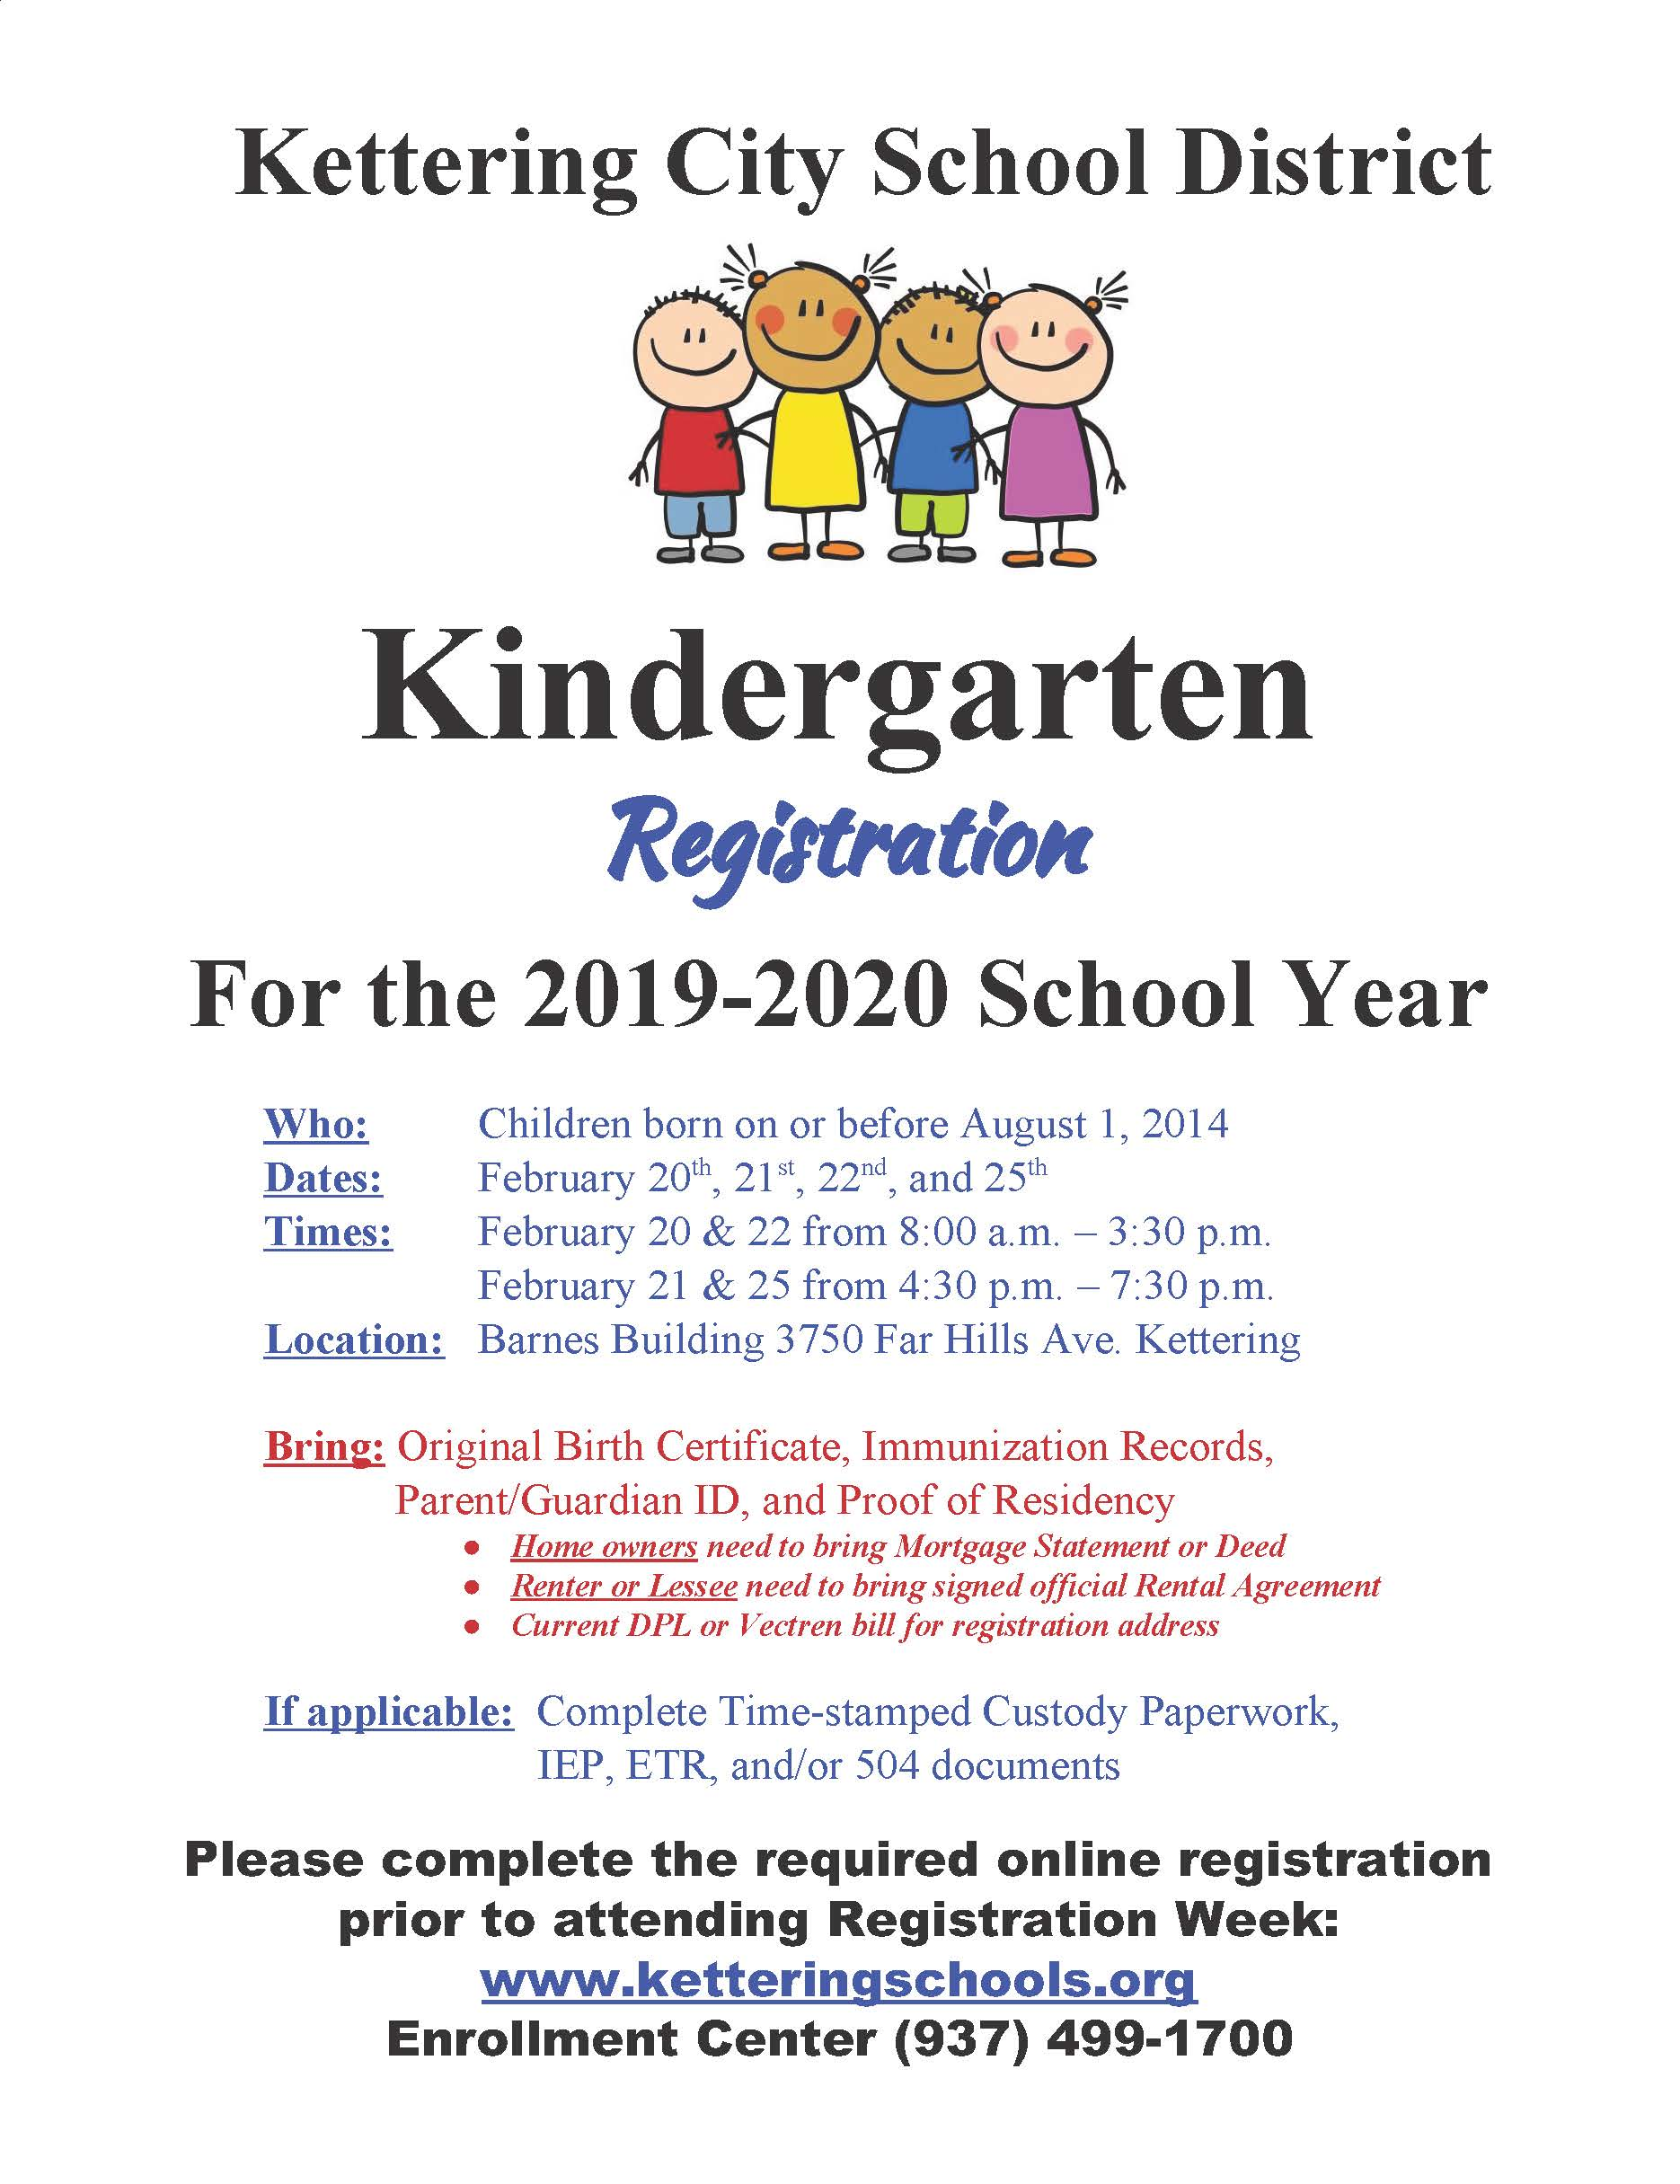 2019-2020 Kindergarten Registration is February 20-22, and February 25